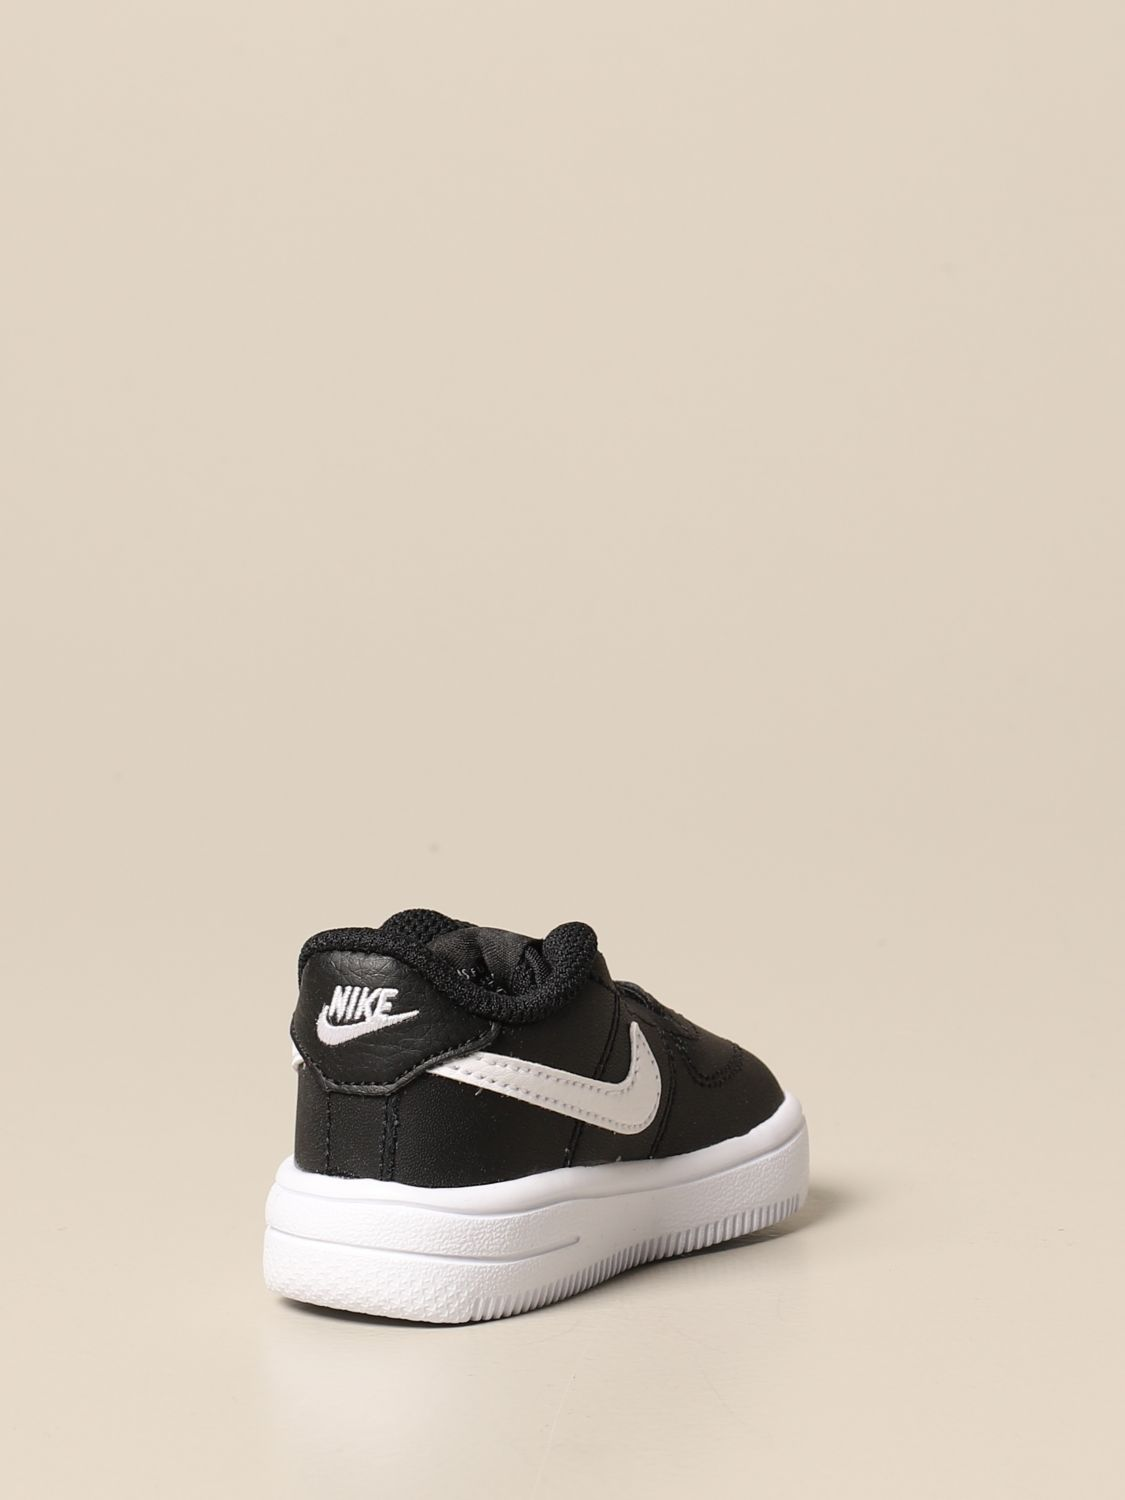 Chaussures Nike: Chaussures enfant Nike noir 3